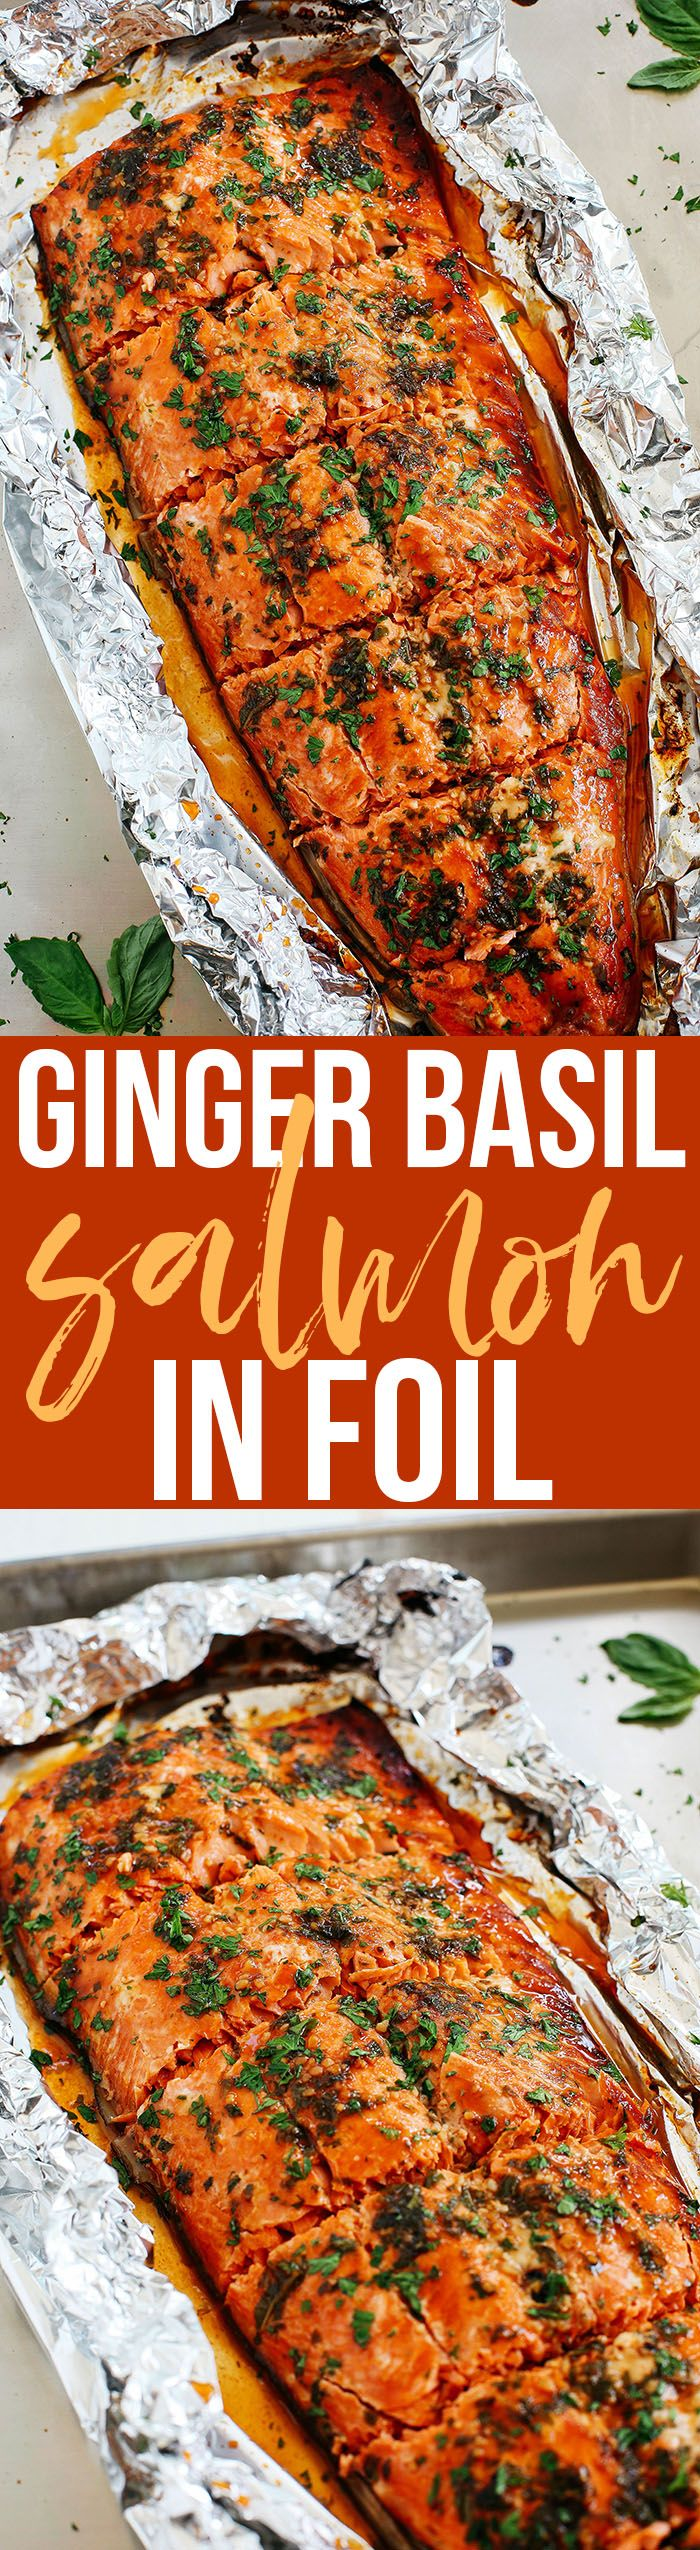 This delicious Ginger Basil Salmon in Foil is the perfect weeknight dinner that's healthy, easy to prepare, and ready in just 20 minutes!